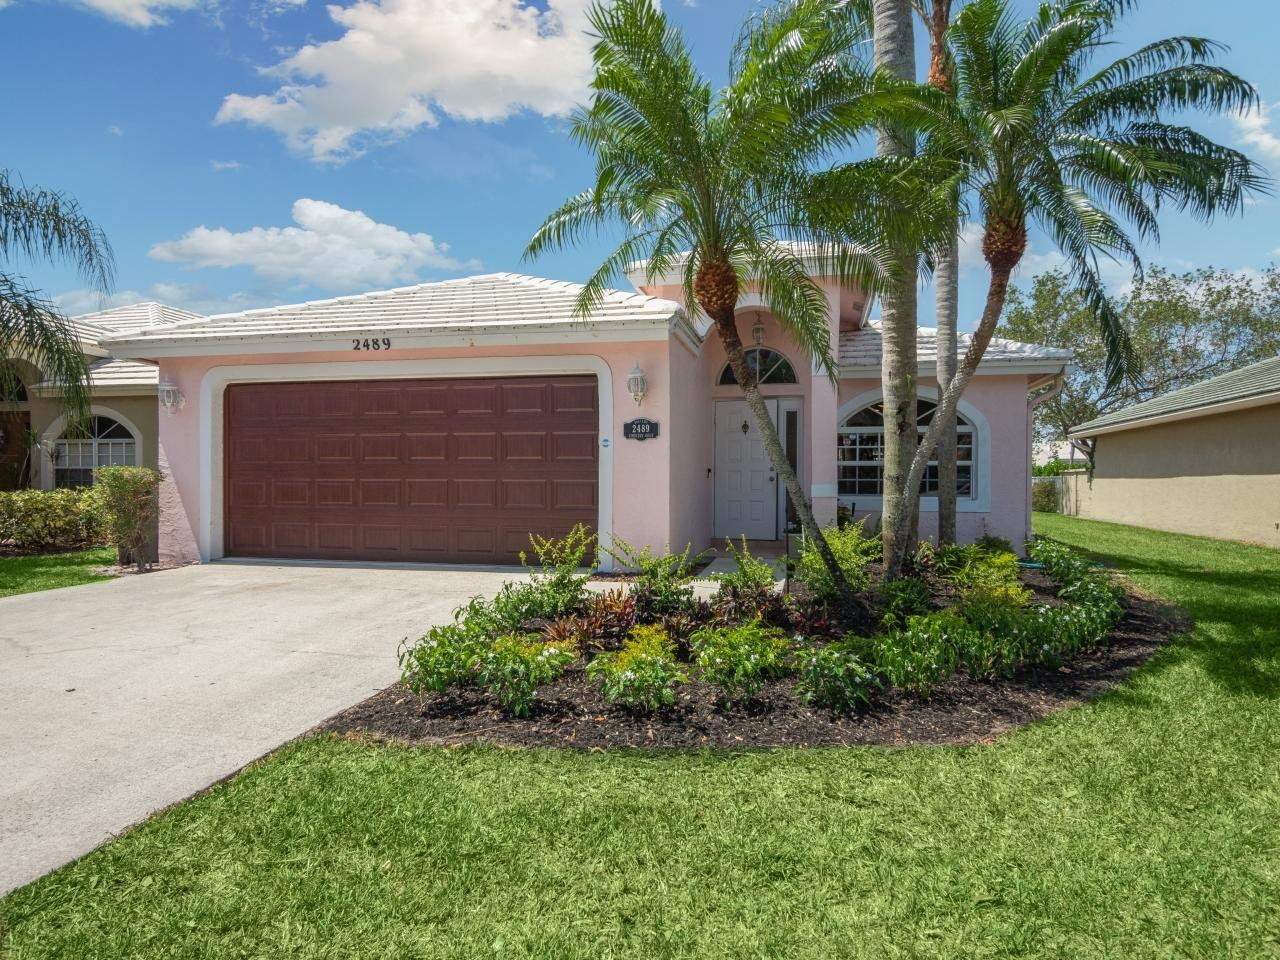 2489  Country Golf Drive  For Sale 10715202, FL